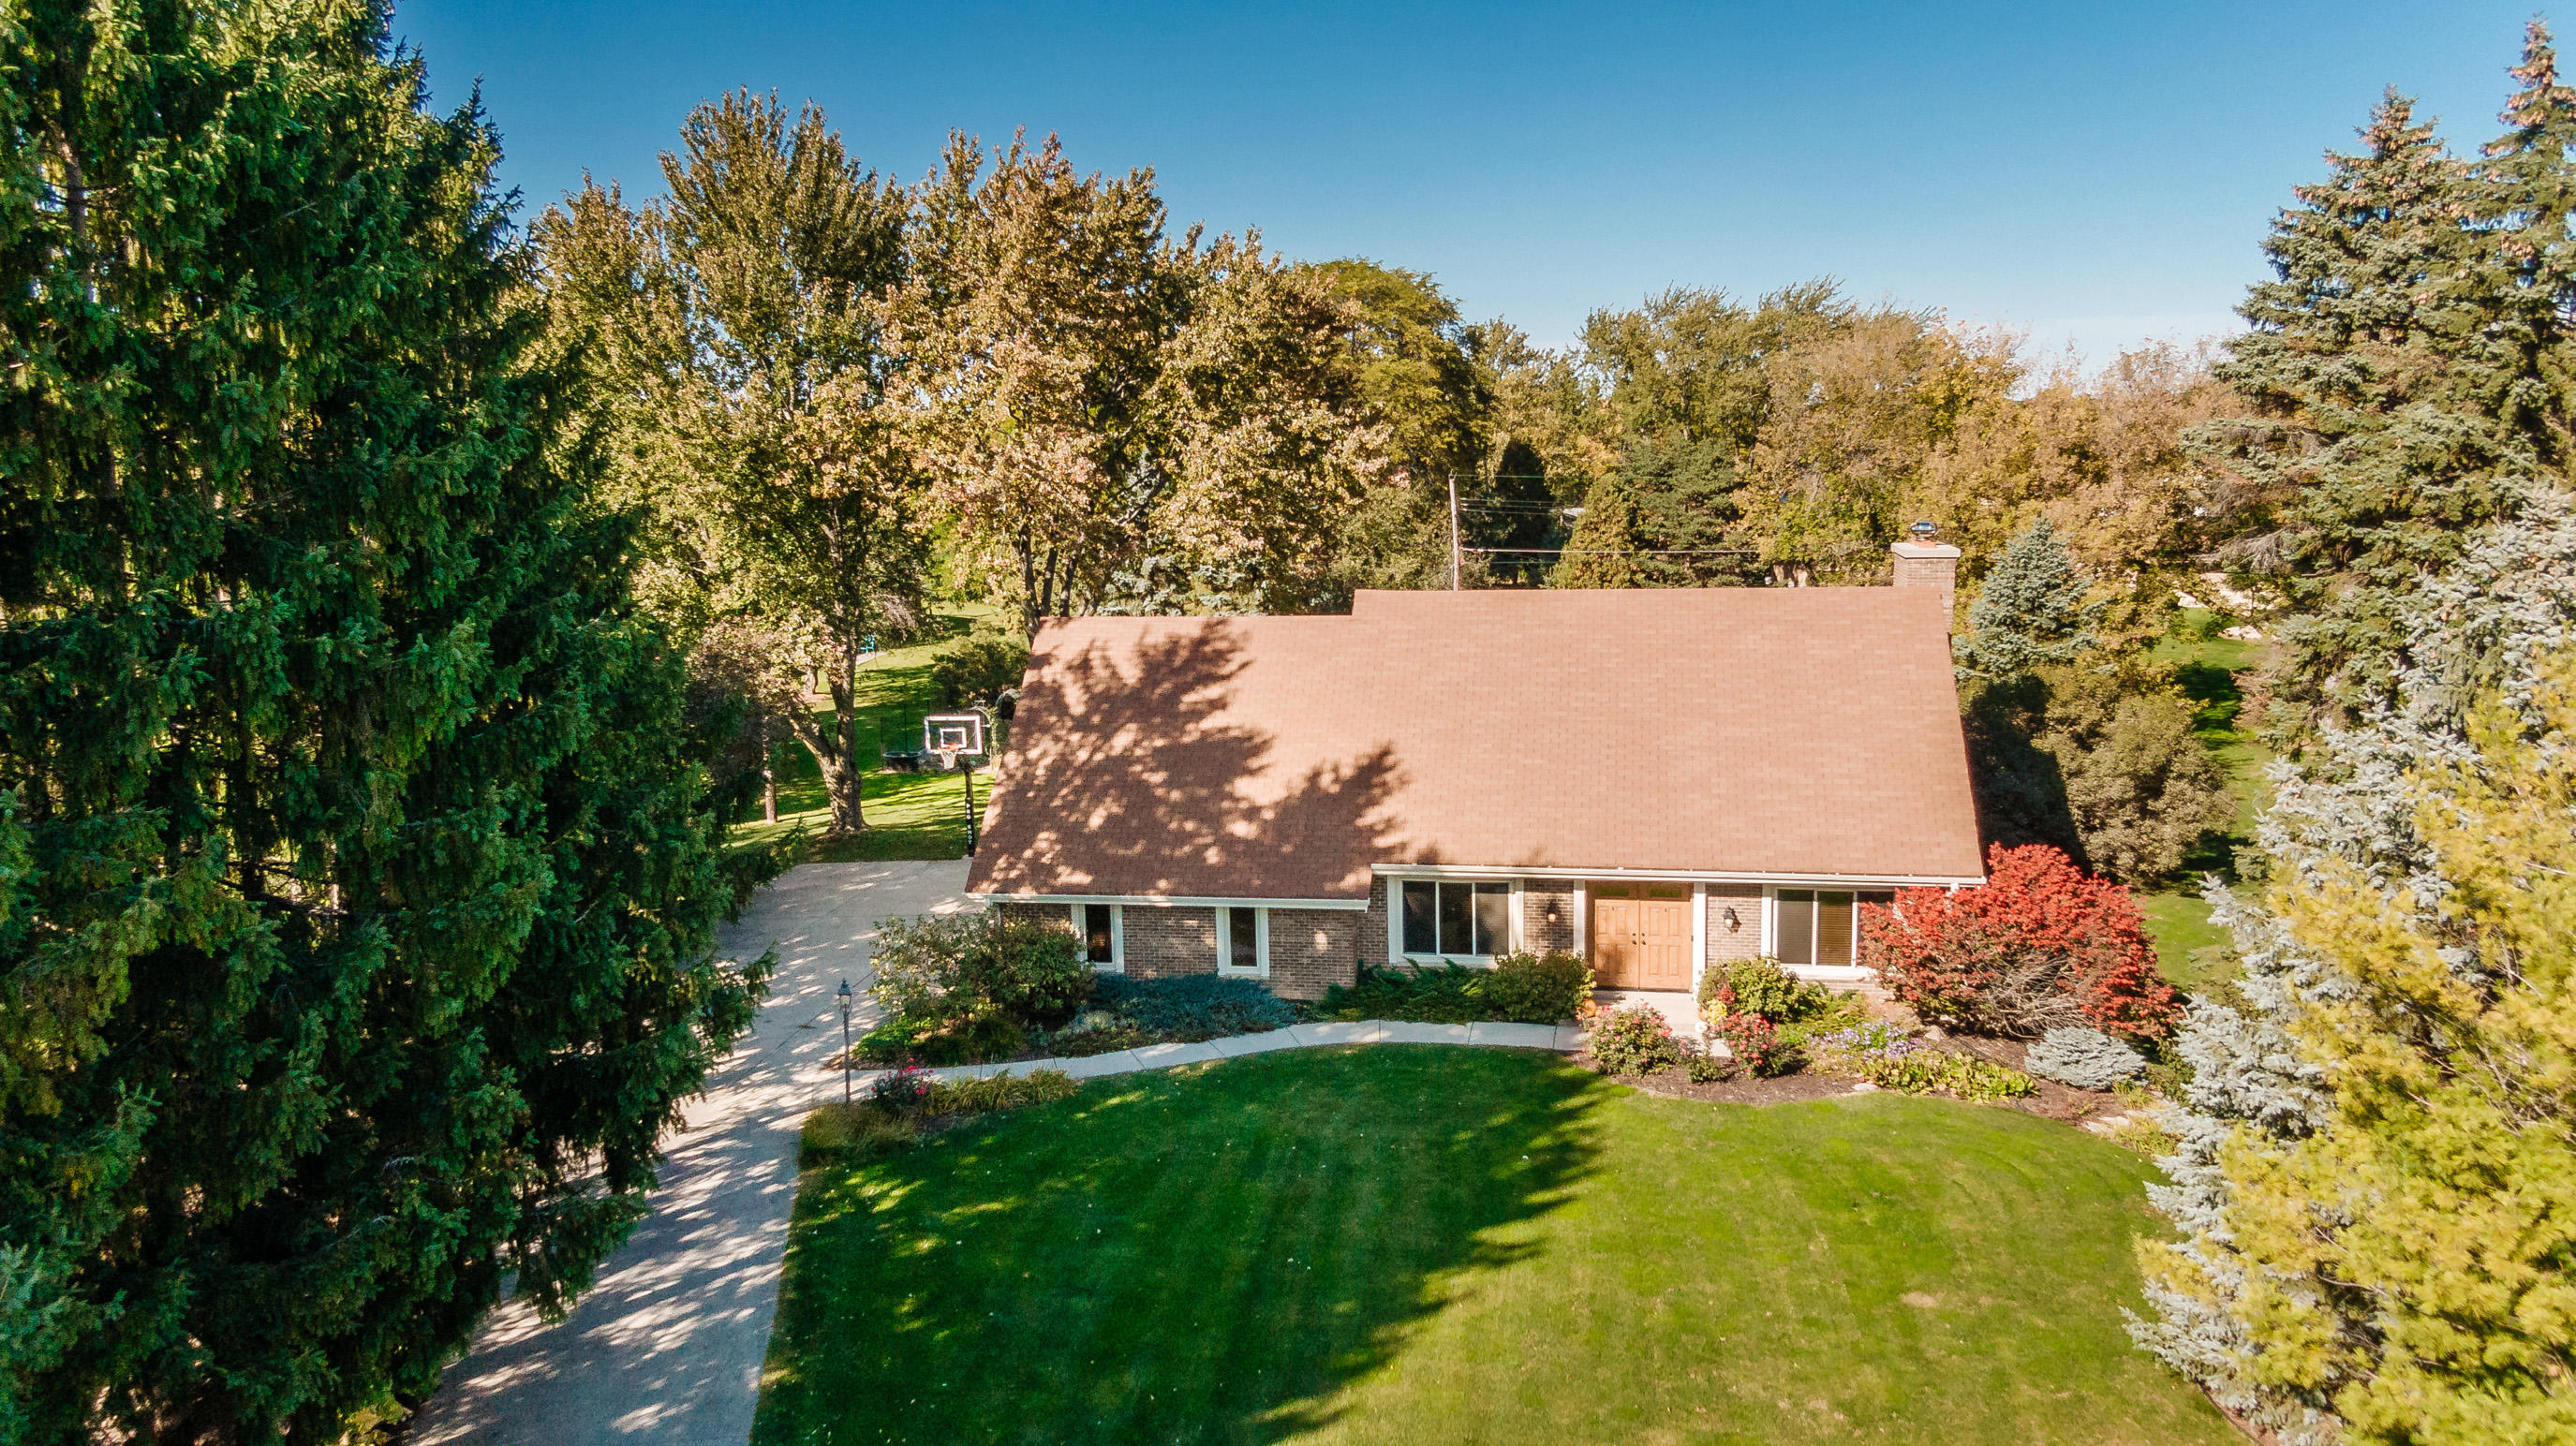 17830 North Ave, Brookfield, Wisconsin 53045, 3 Bedrooms Bedrooms, 7 Rooms Rooms,2 BathroomsBathrooms,Single-Family,For Sale,North Ave,1714126